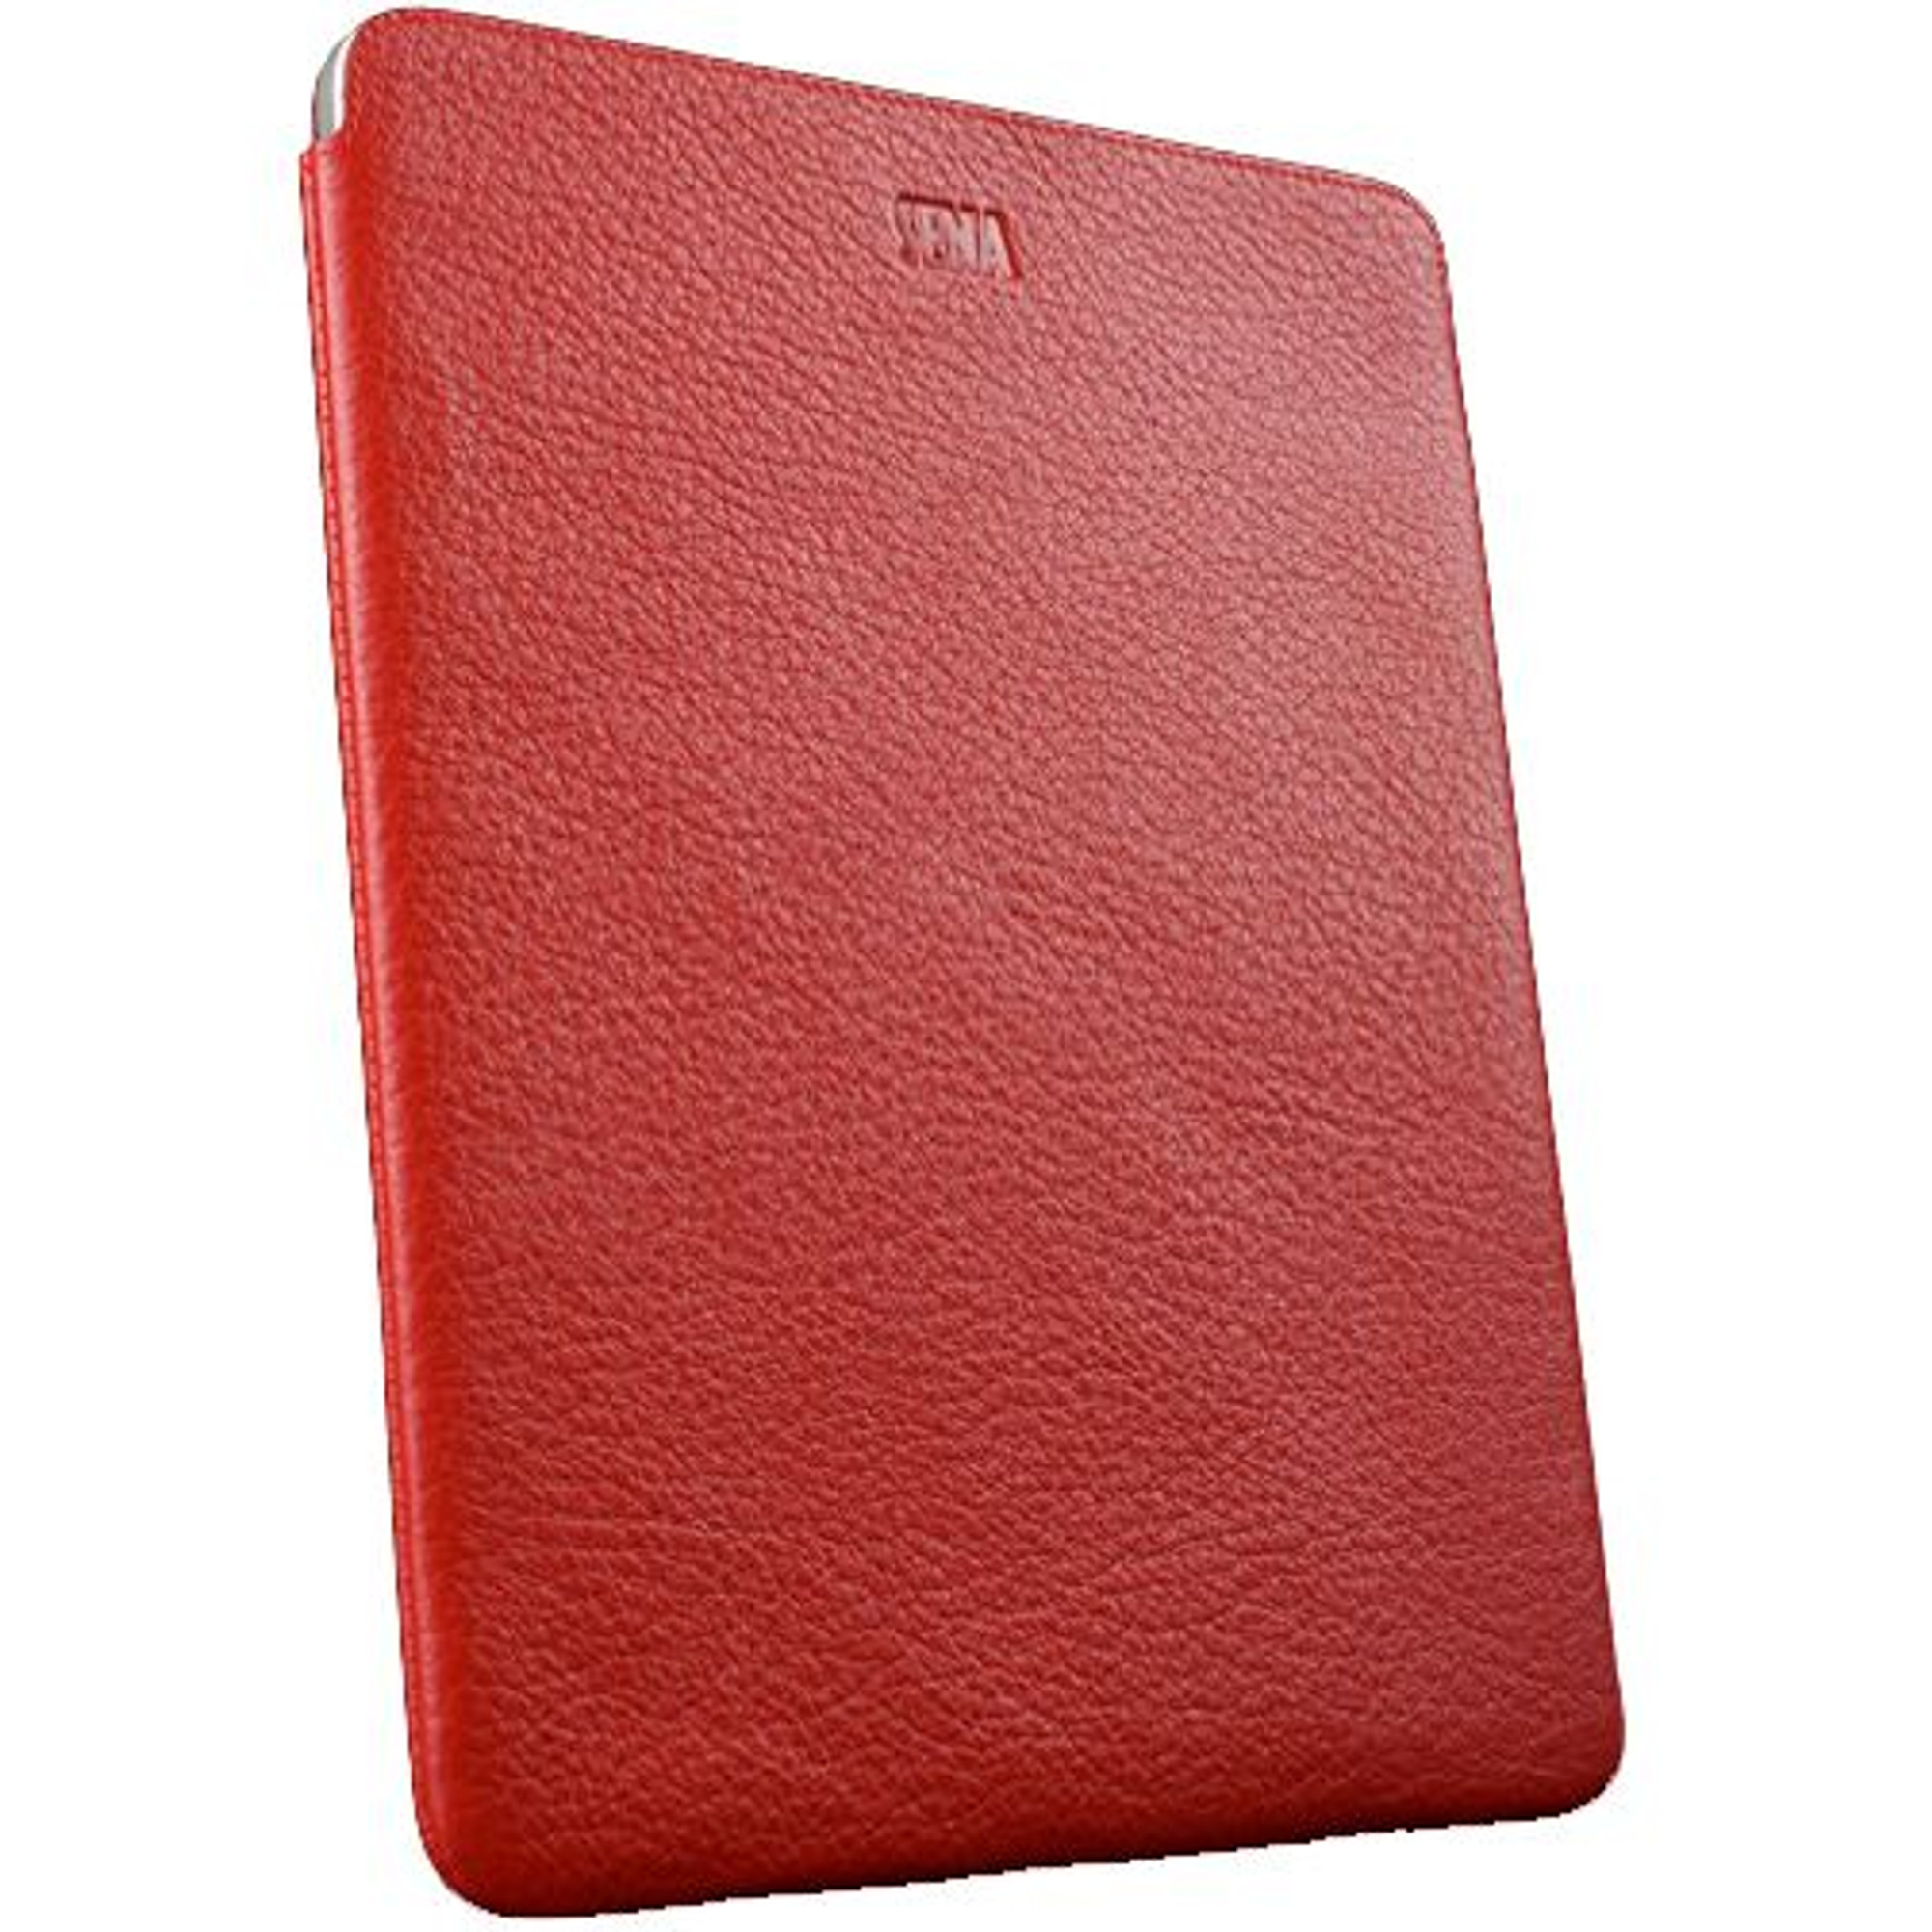 low priced c95ed db657 Sena UltraSlim Genuine Leather Cover for iPad 2 & 3 - Red